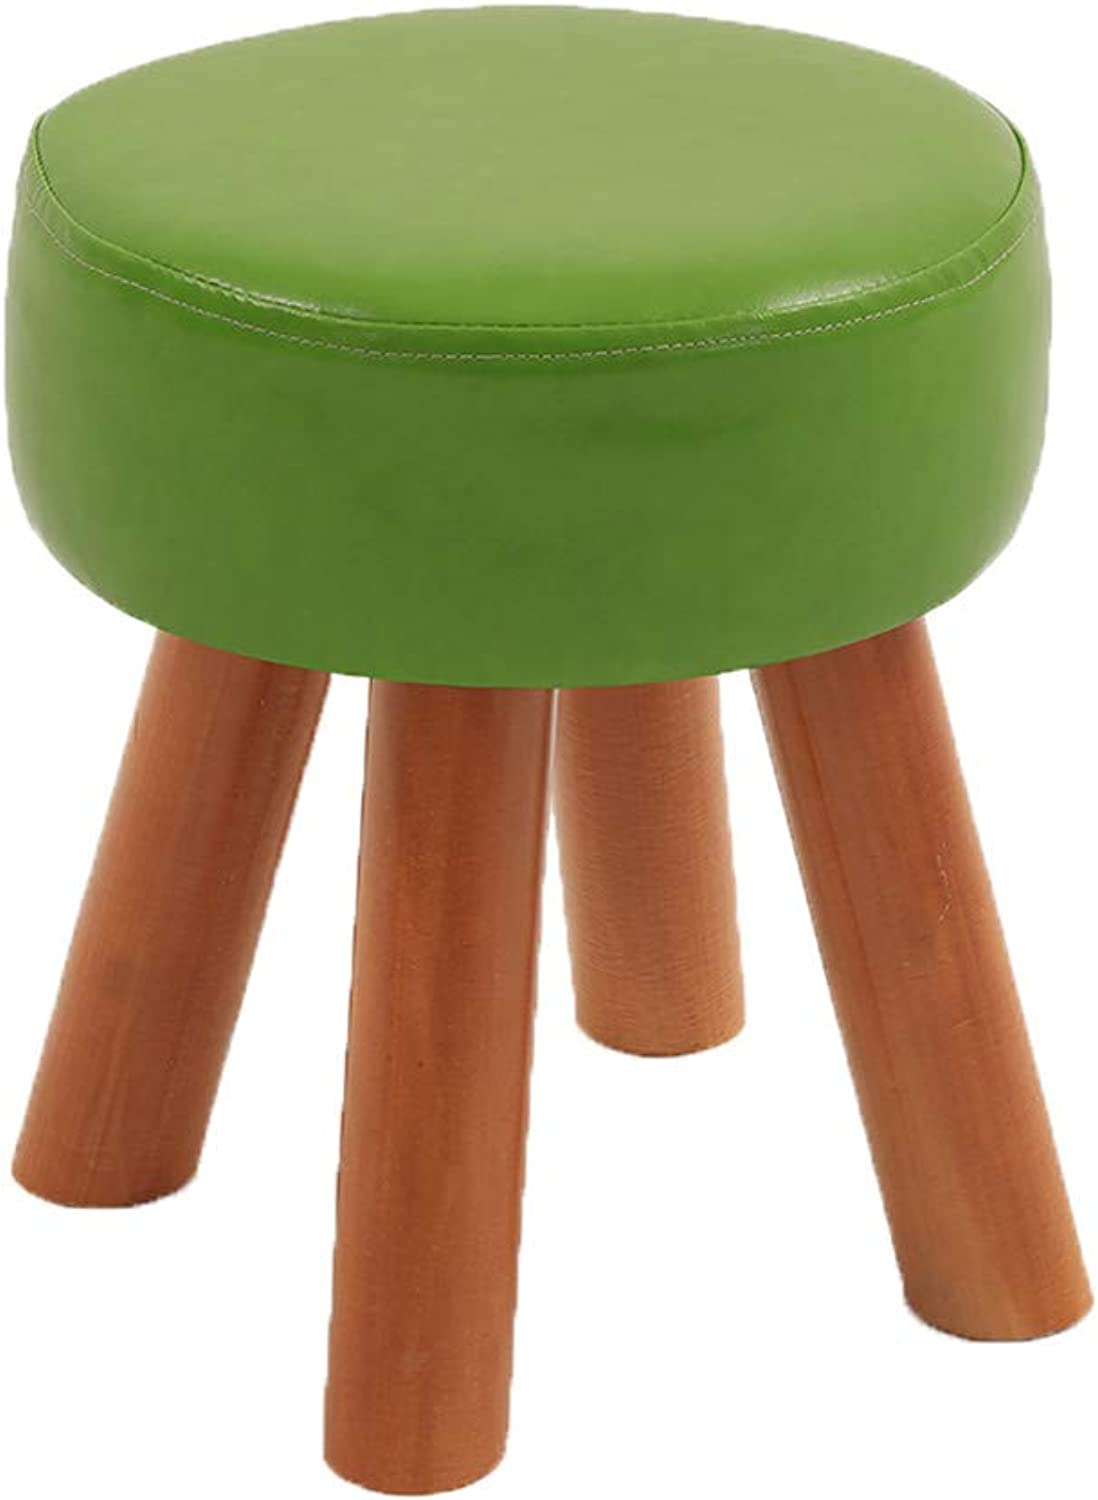 HLJ Creative Leather Tea Table Stool Simple Solid Wood Home Stool Comfortable Fashion Sofa Bench for Change shoes Bench (Size   28  32cm)